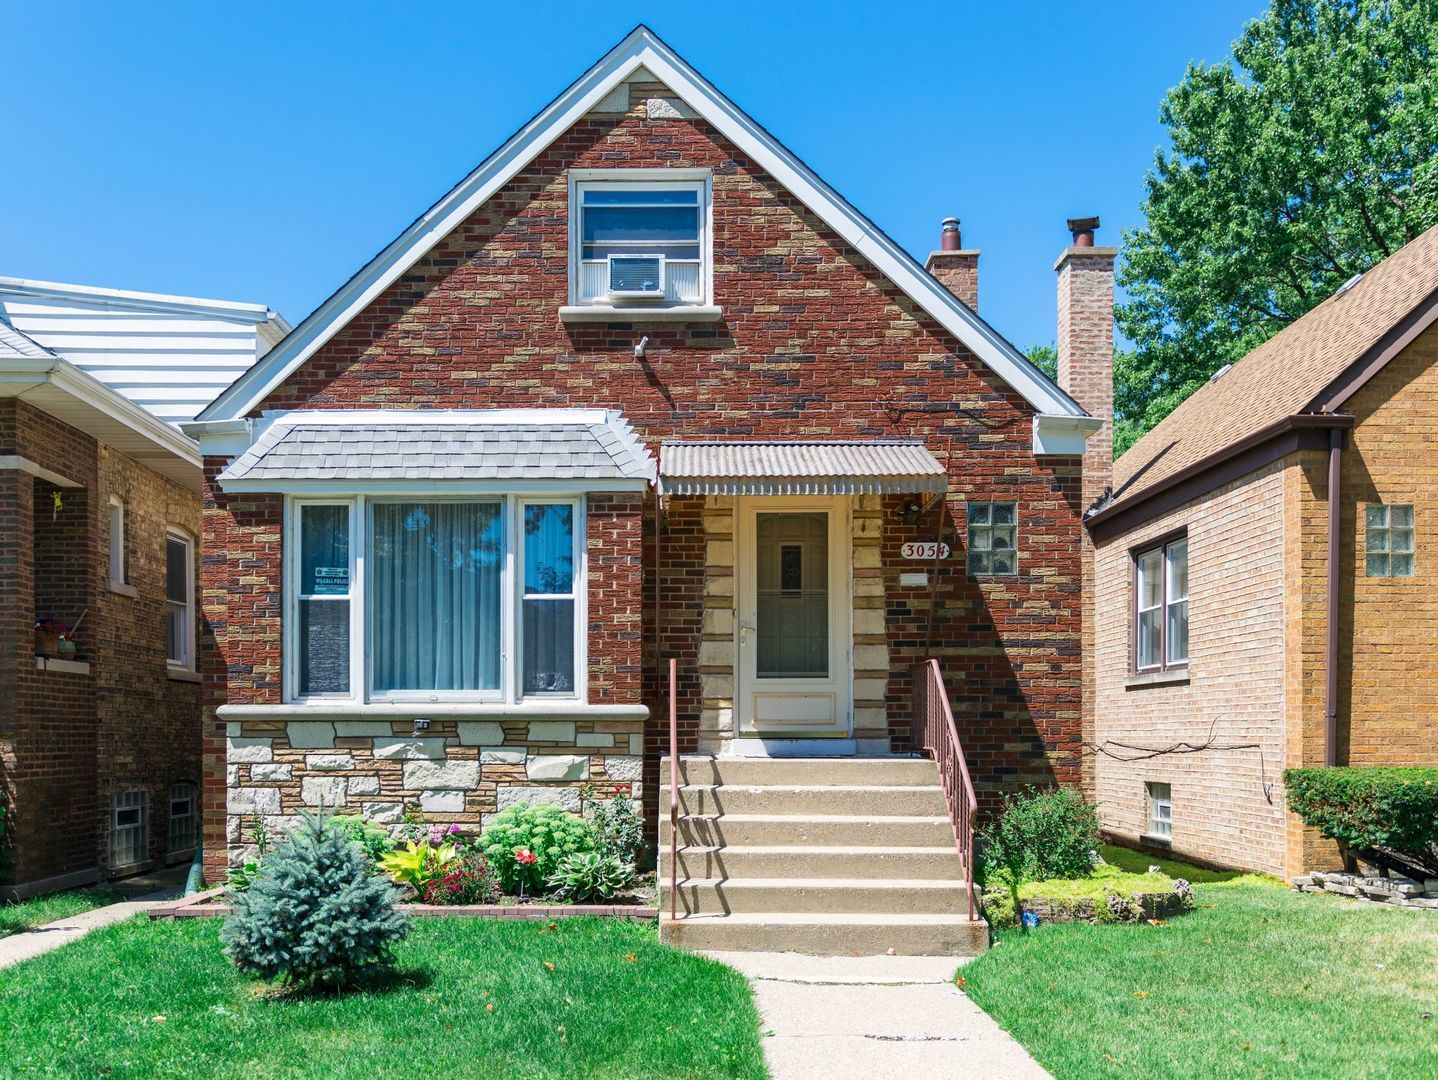 3054 N Rutherford Exterior Photo